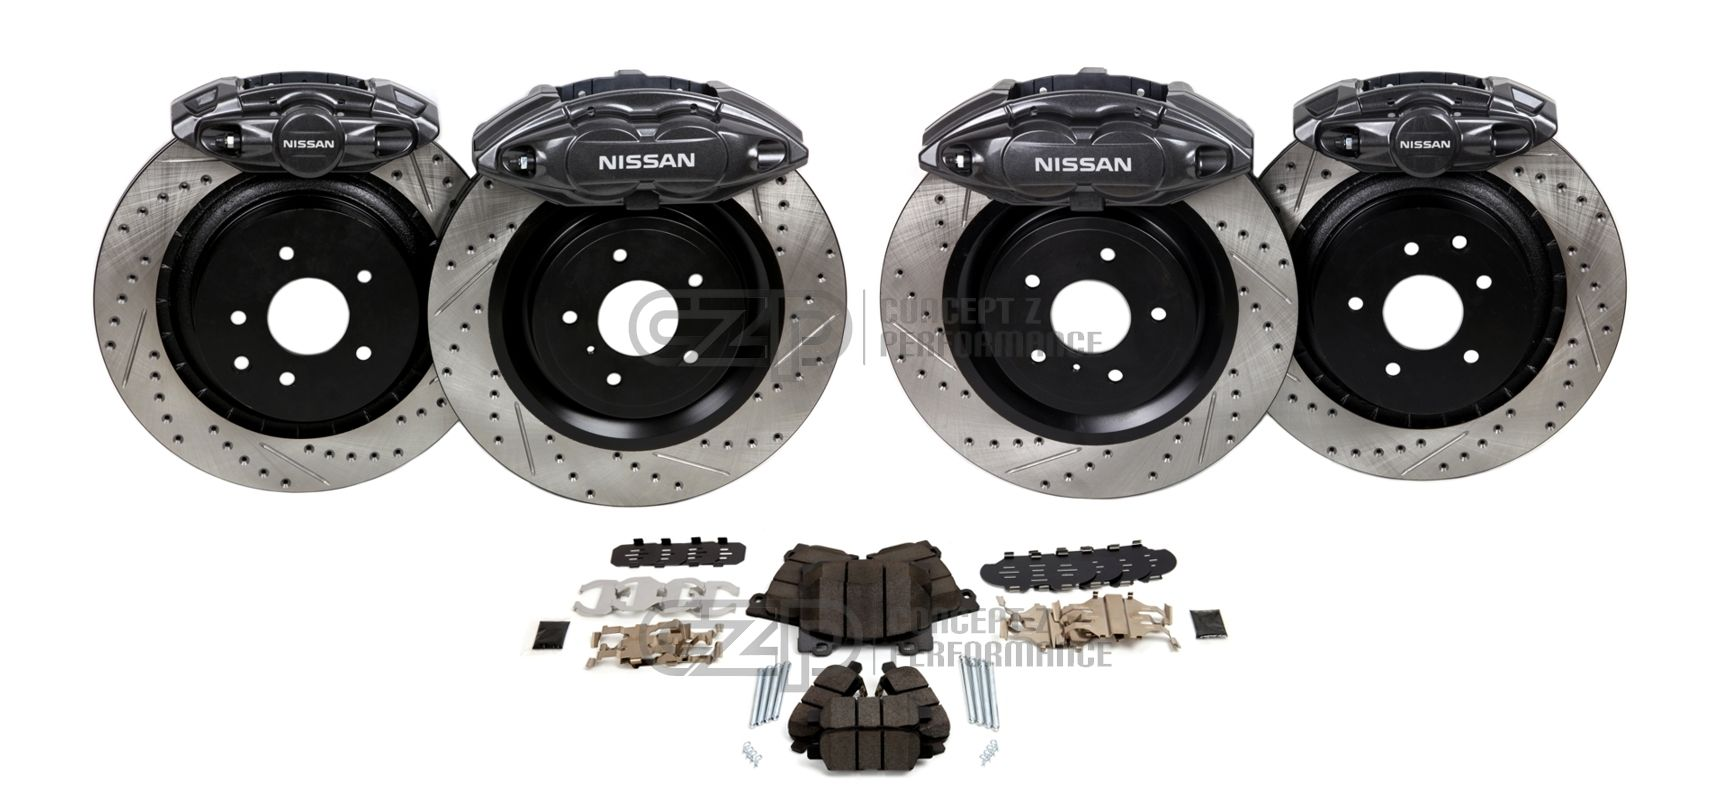 Akebono Infiniti Front and Rear Big Brake Kit Upgrade Kit FX35 / FX37 / FX45 / FX50 / QX70